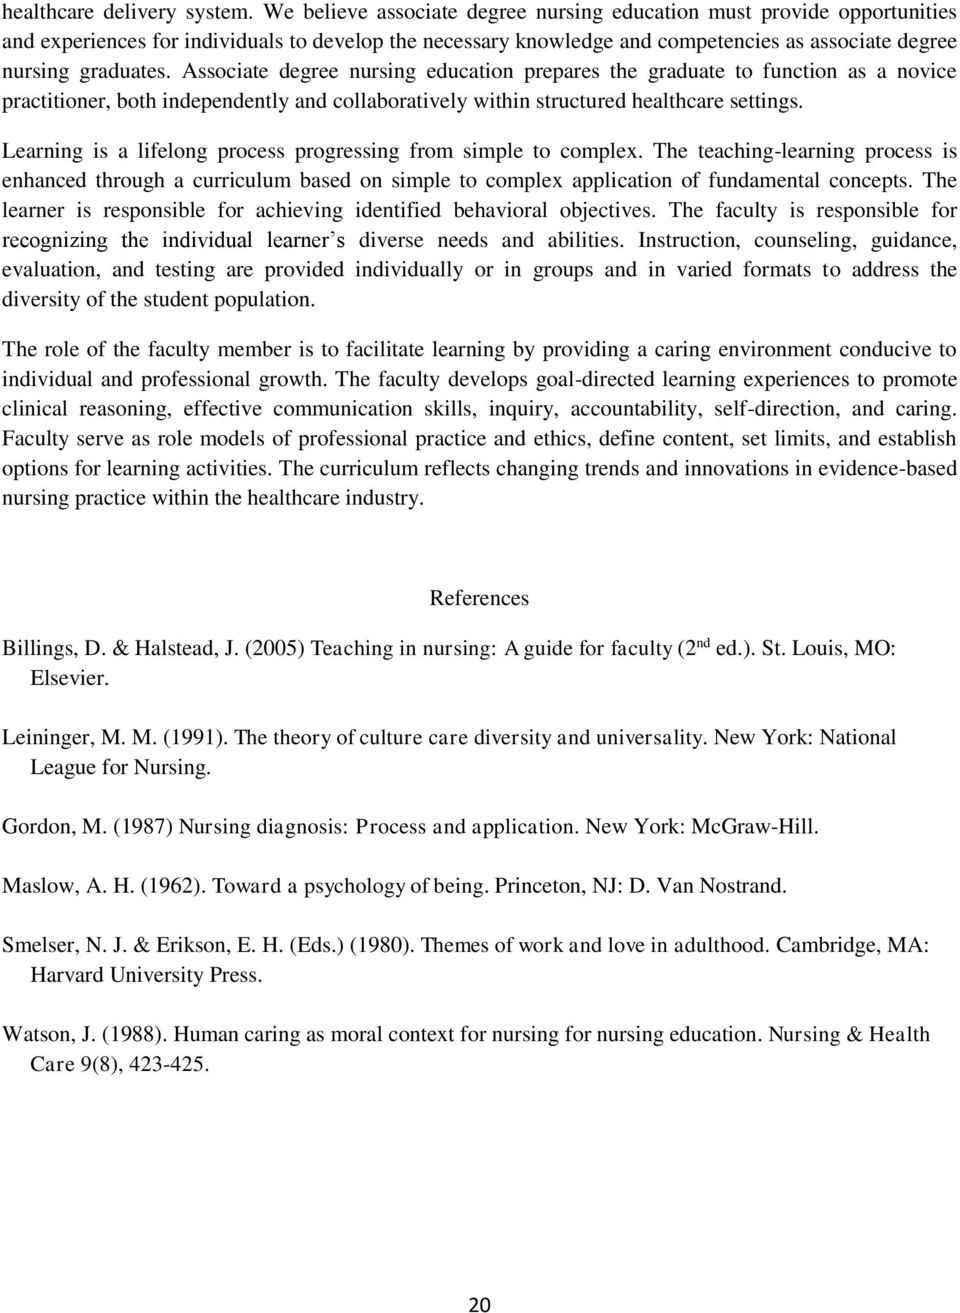 BLINN COLLEGE ASSOCIATE DEGREE NURSING PROGRAM STUDENT HANDBOOK - PDF